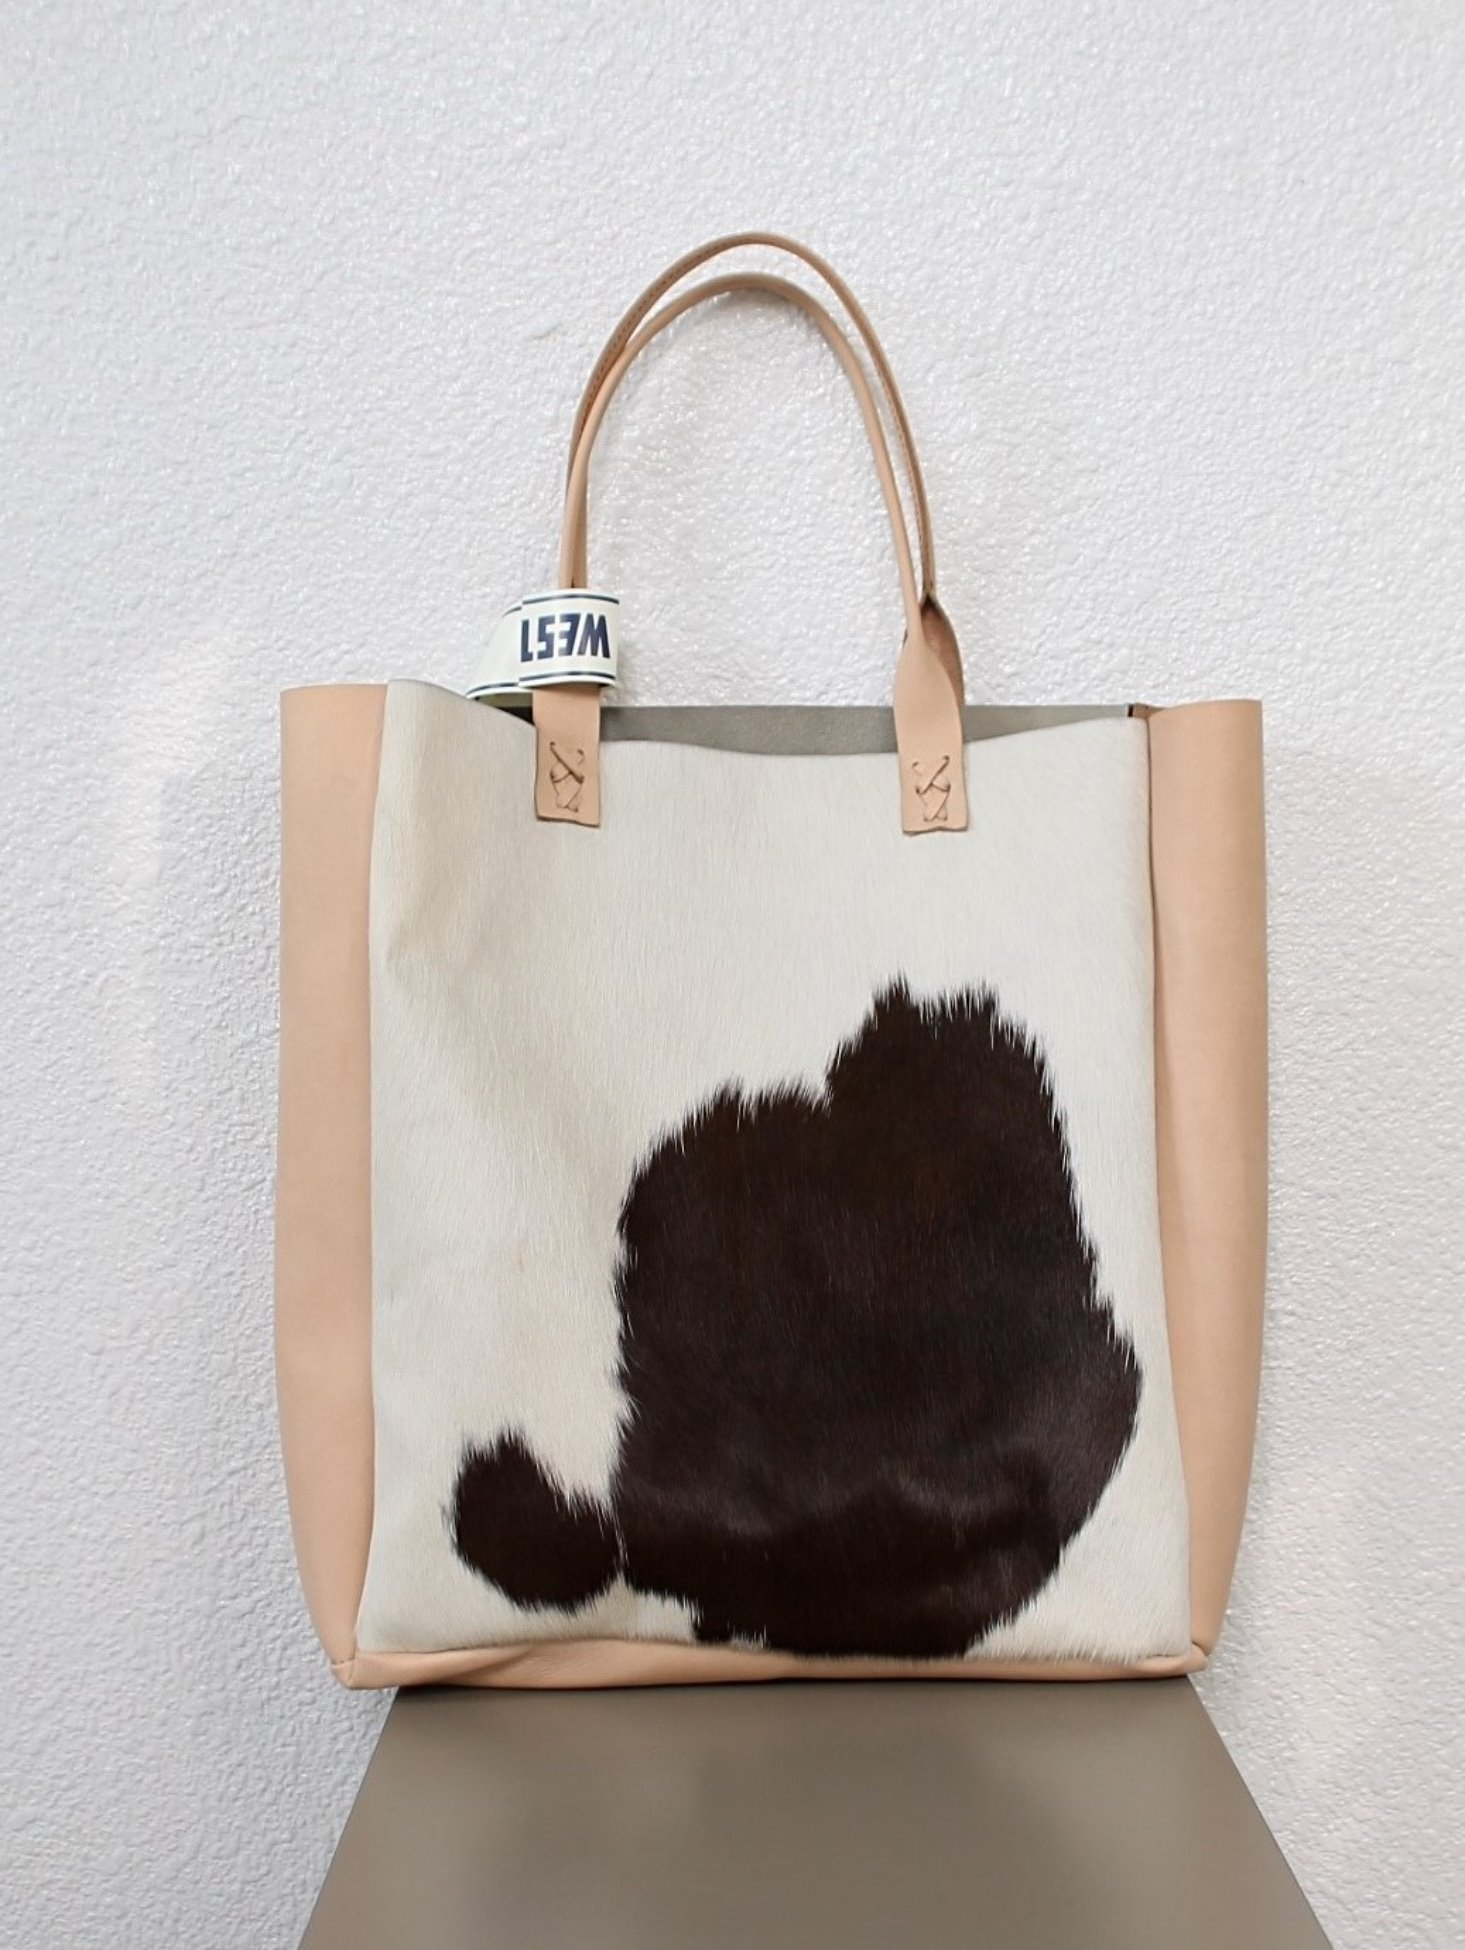 [WESTOVERALLS] Fur & Leather Bag - Brown Pony